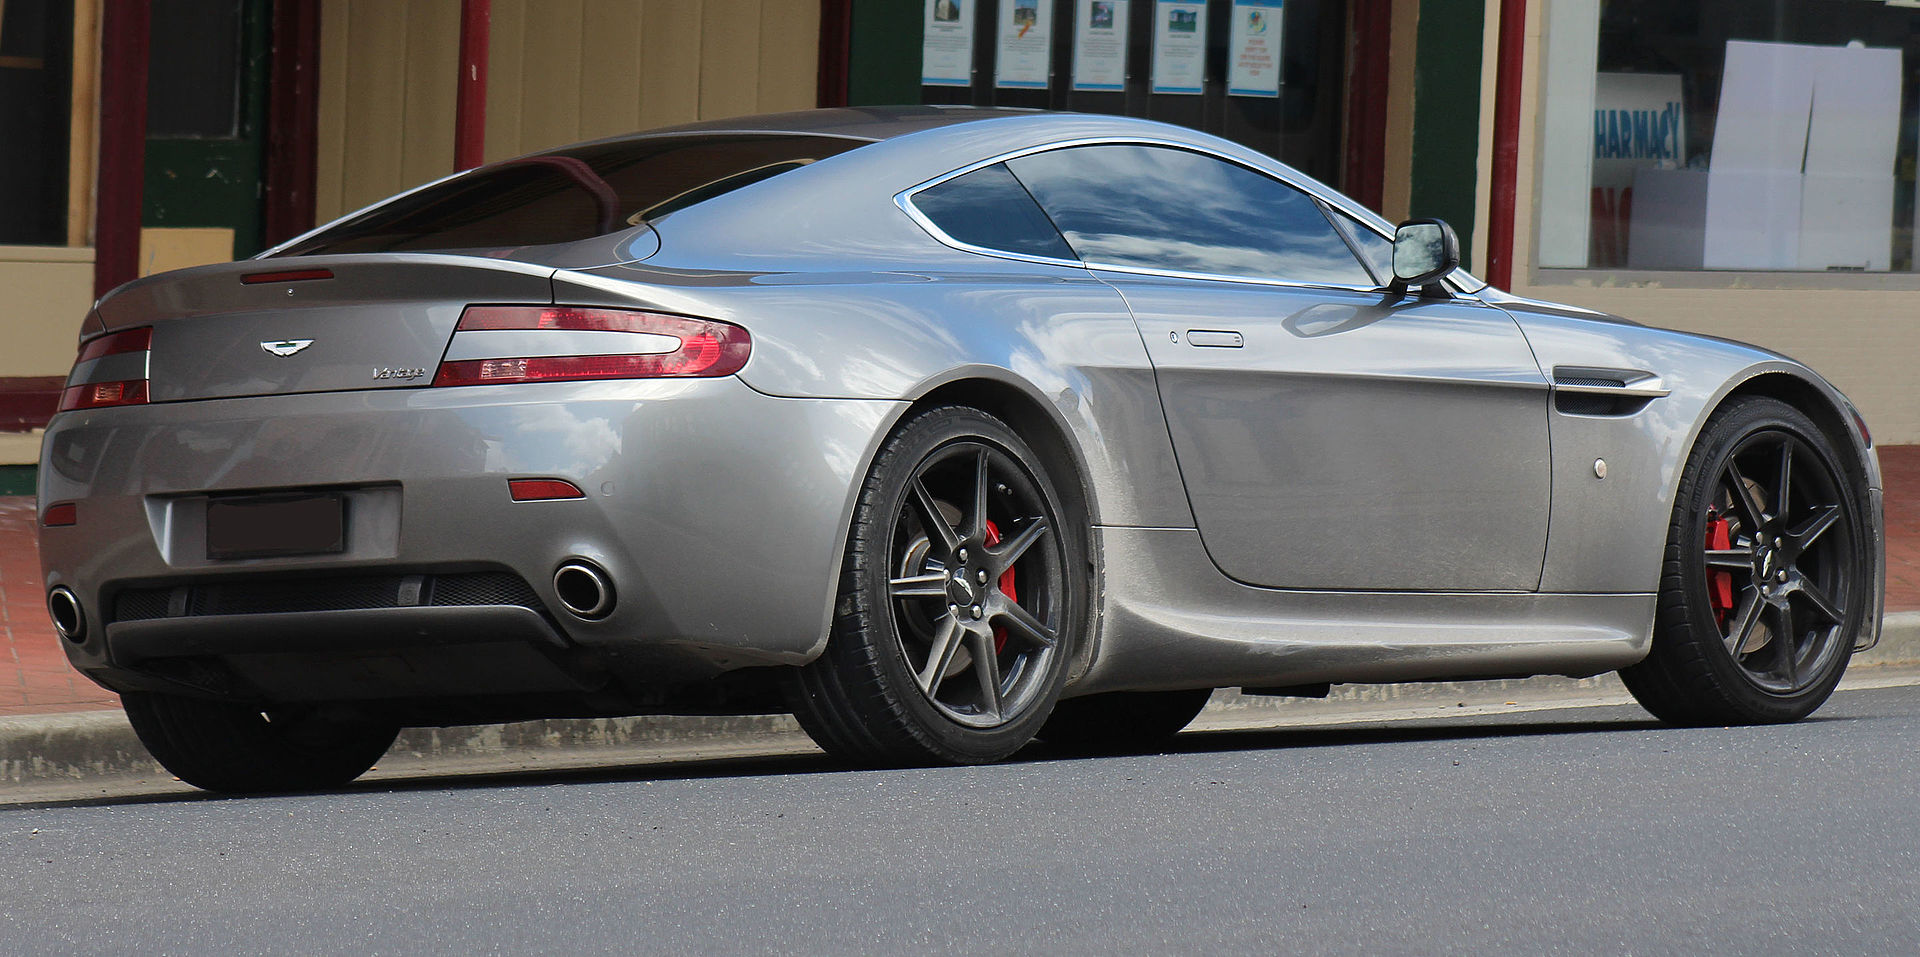 1920px 2008 aston martin v8 vantage coupe 2014 12 28 jpg. Cars Review. Best American Auto & Cars Review